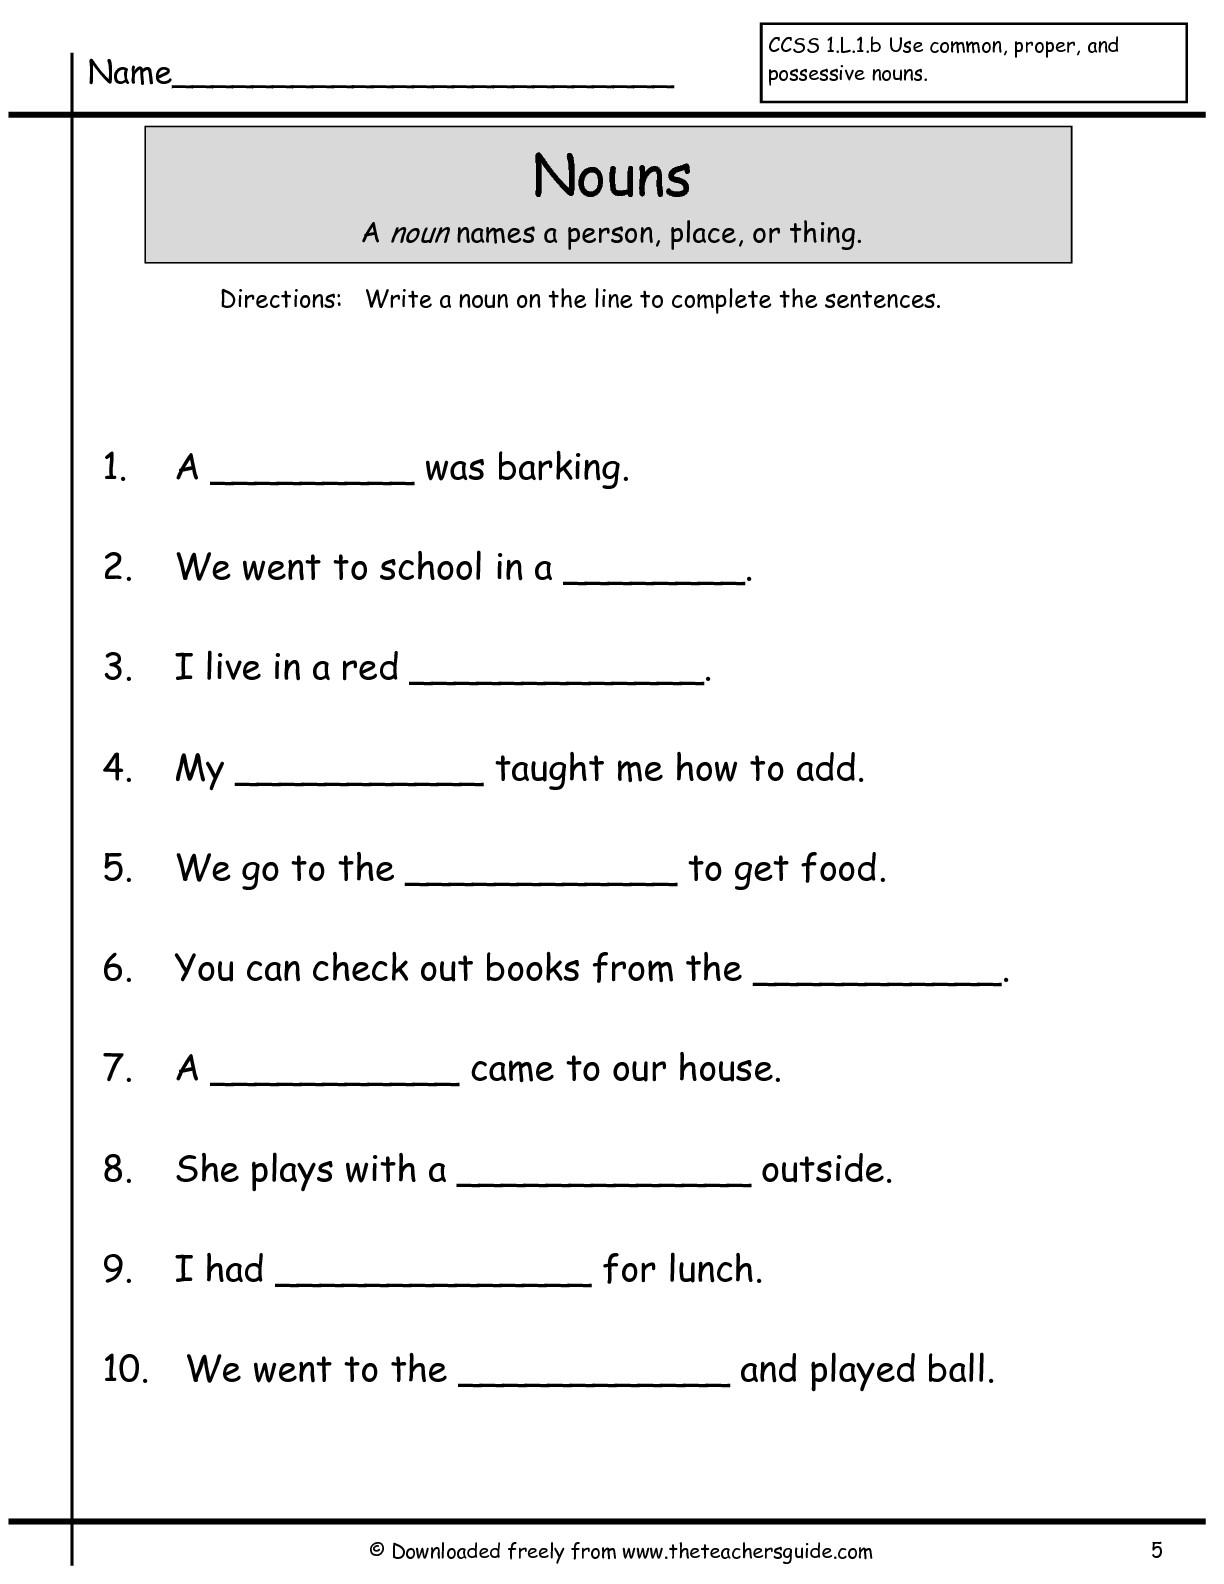 16 Best Images Of Printable Spanish Worksheets 1st Grade